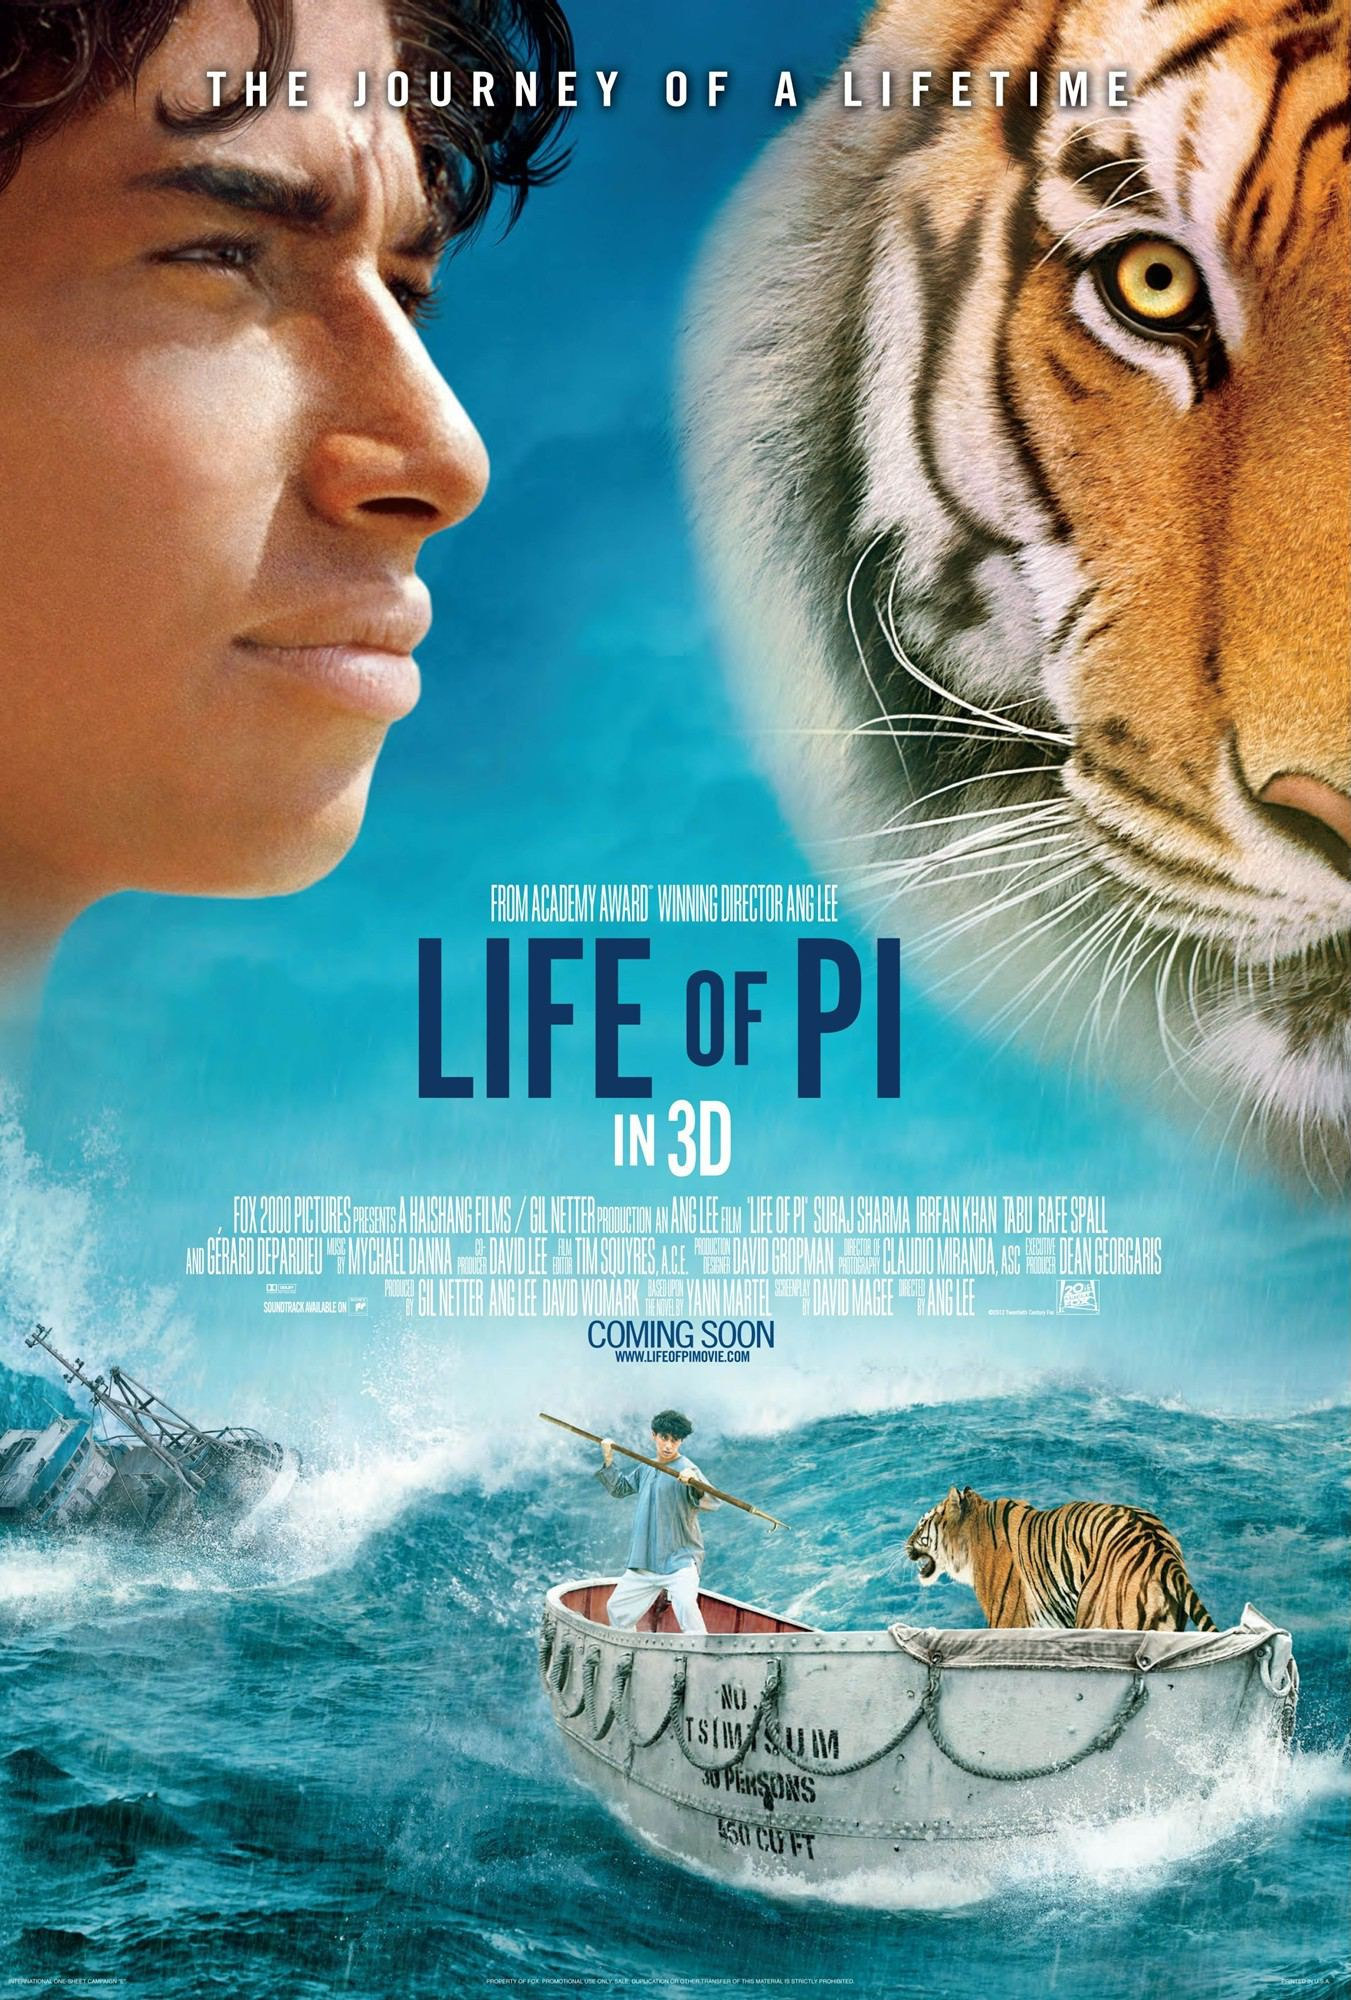 Spiced ceviche boats with tiger 39 s milk life of pi for Life of pi in hindi